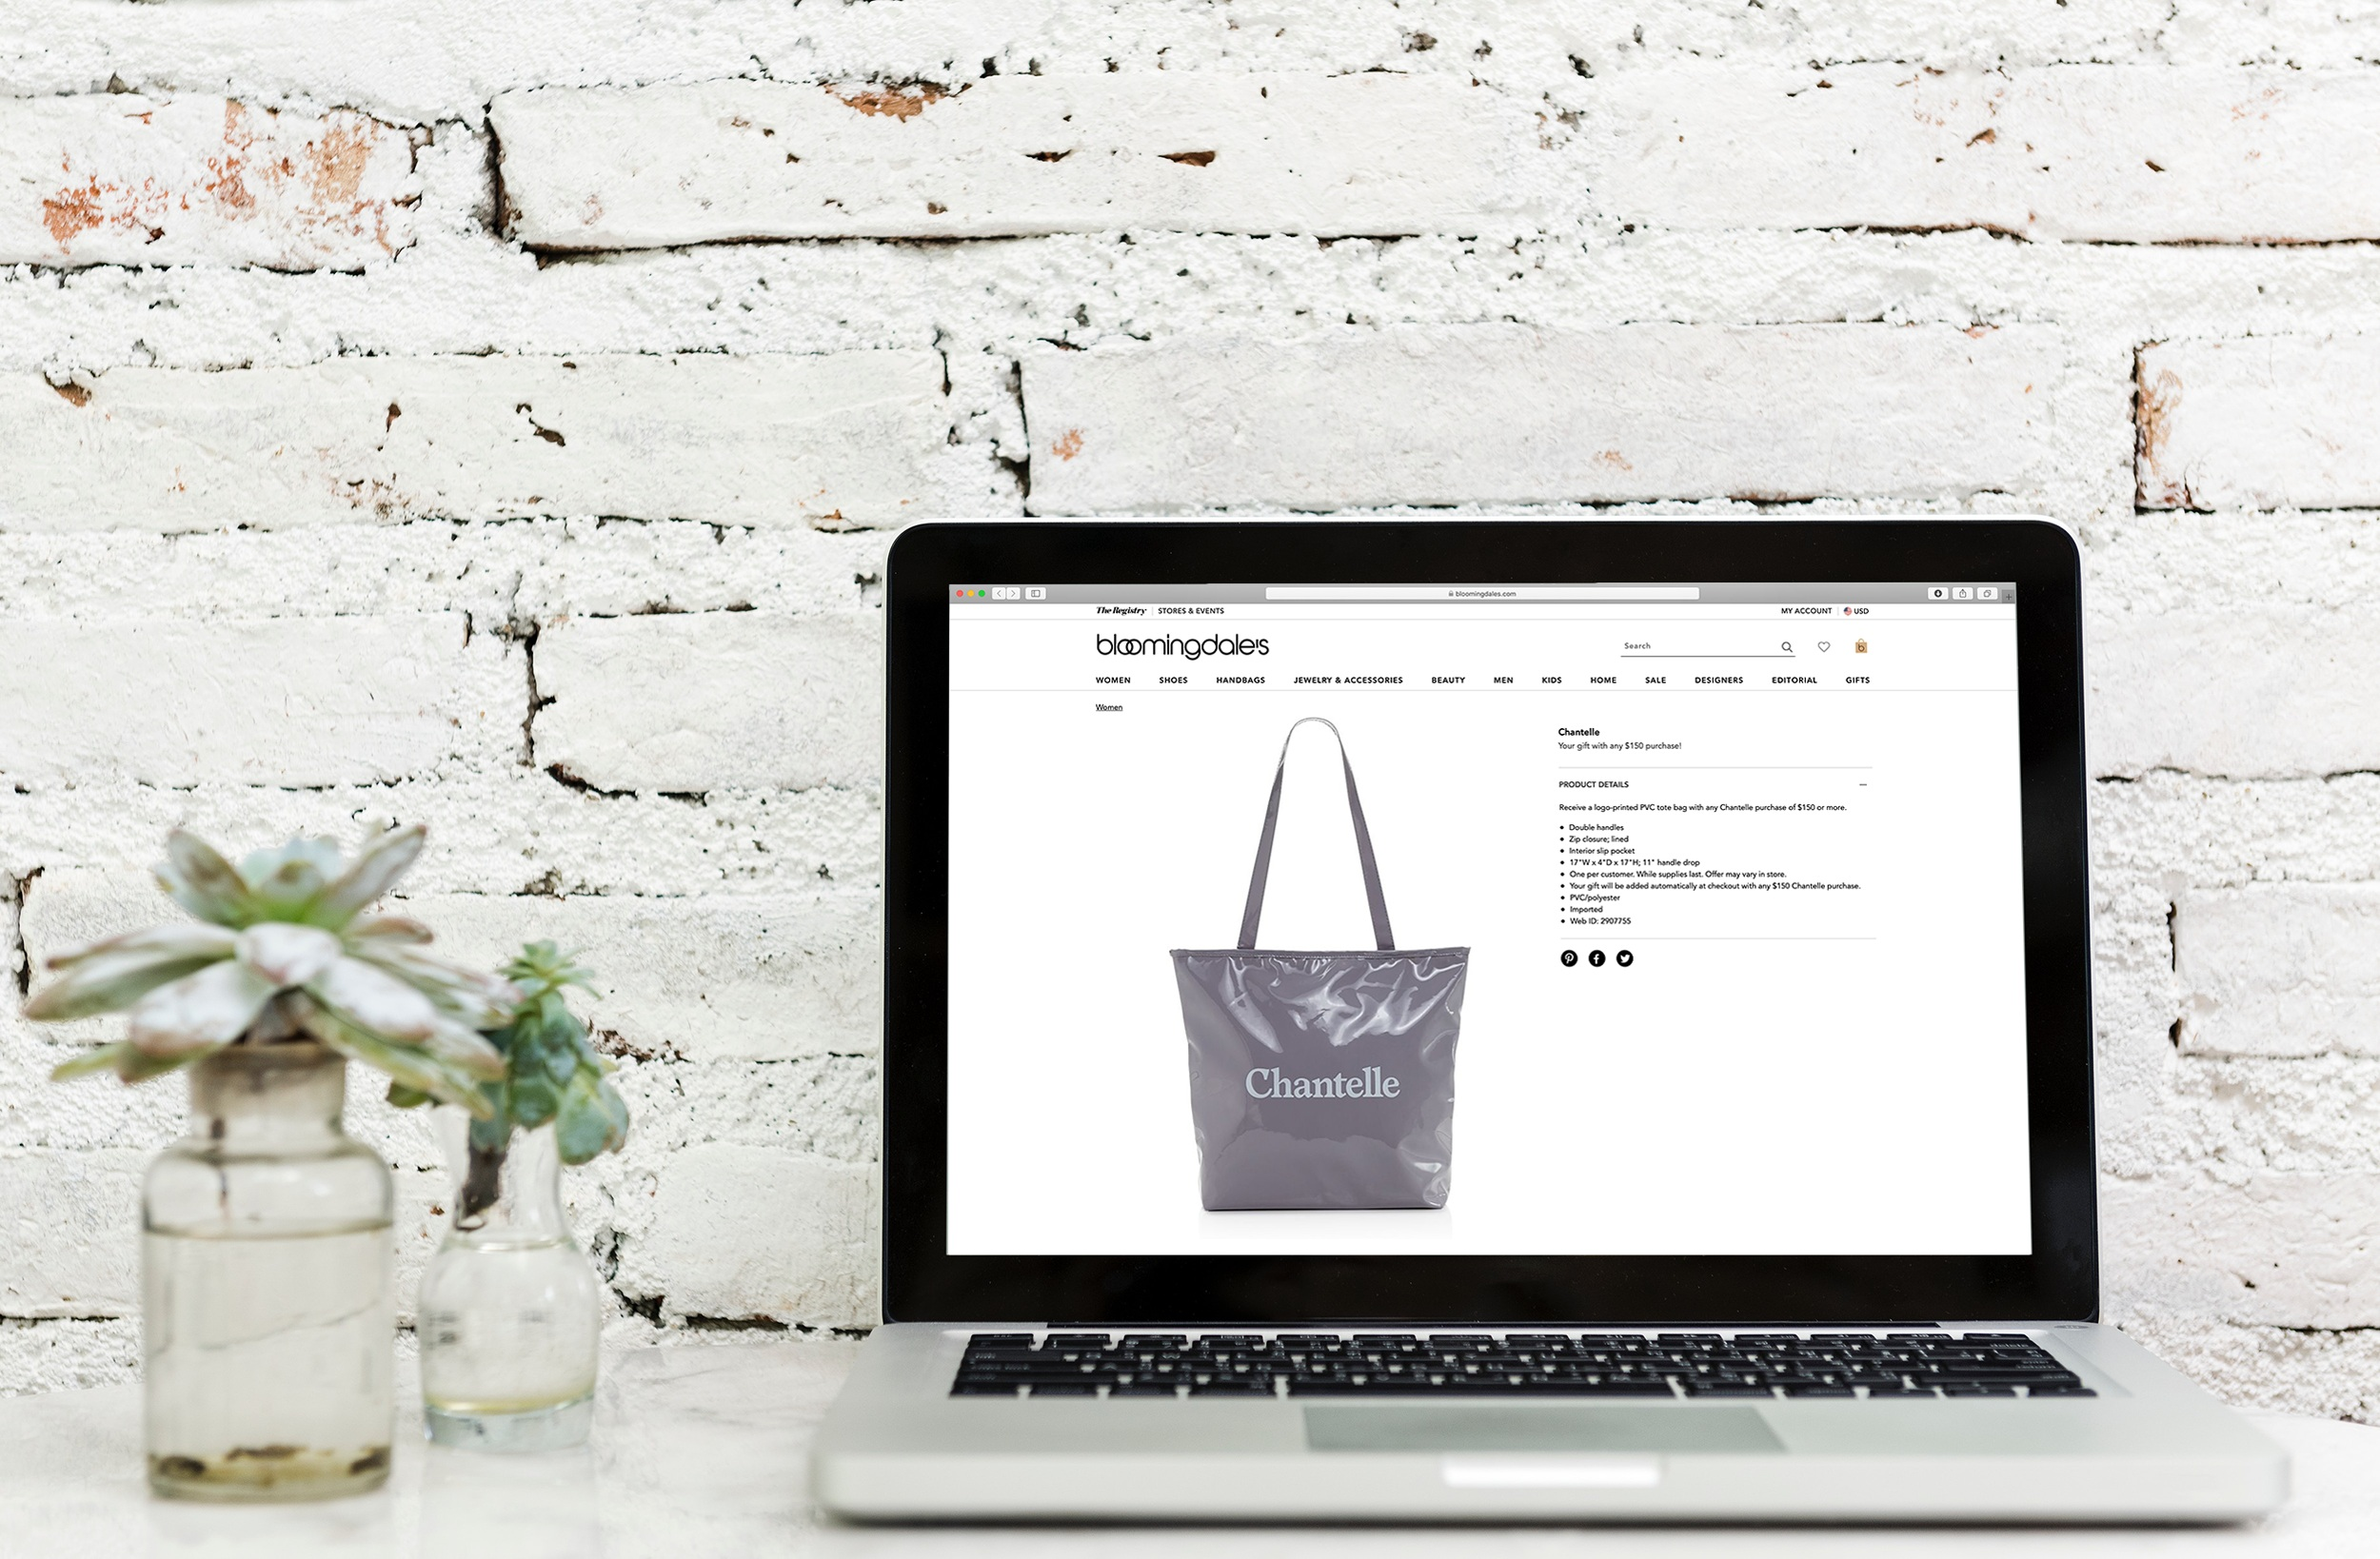 Gift-with-Purchase Bag Produced & Distributed to Retailers Nationwide